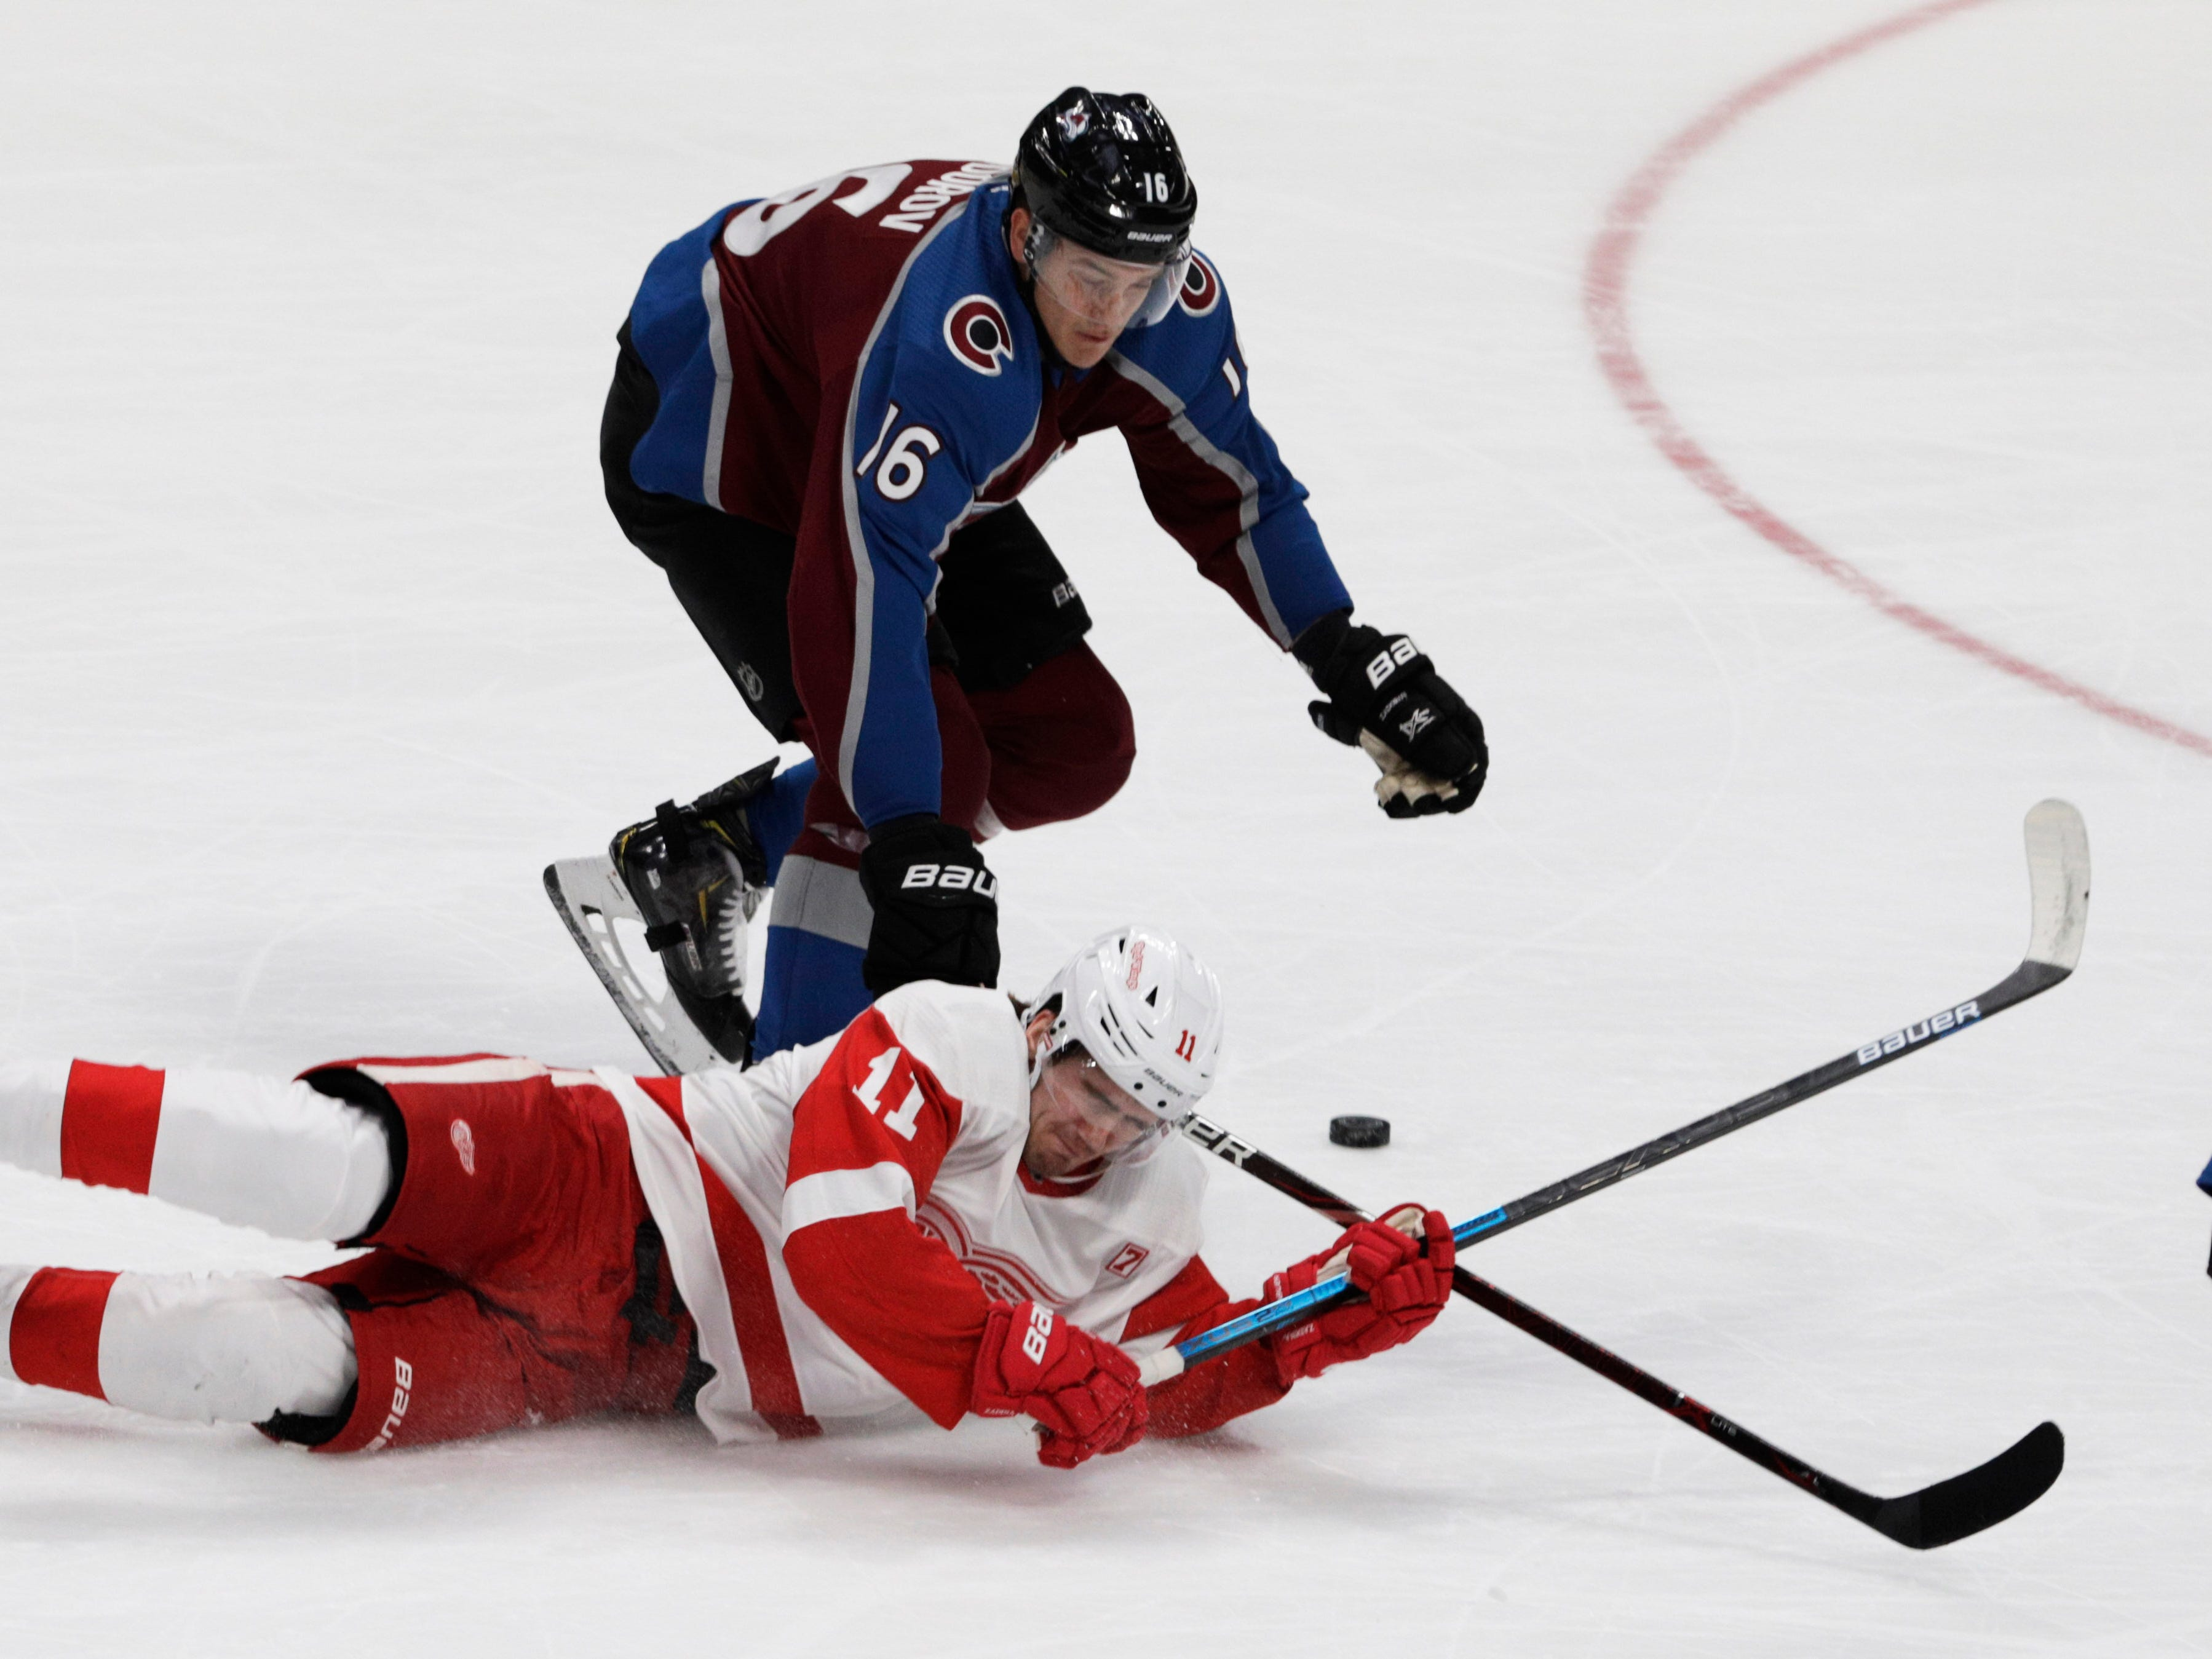 Detroit Red Wings right wing Filip Zadina (11) falls to the ice as Colorado Avalanche defenseman Nikita Zadorov (16) defends during the first period of an NHL hockey game in Denver, Tuesday, March 5, 2019